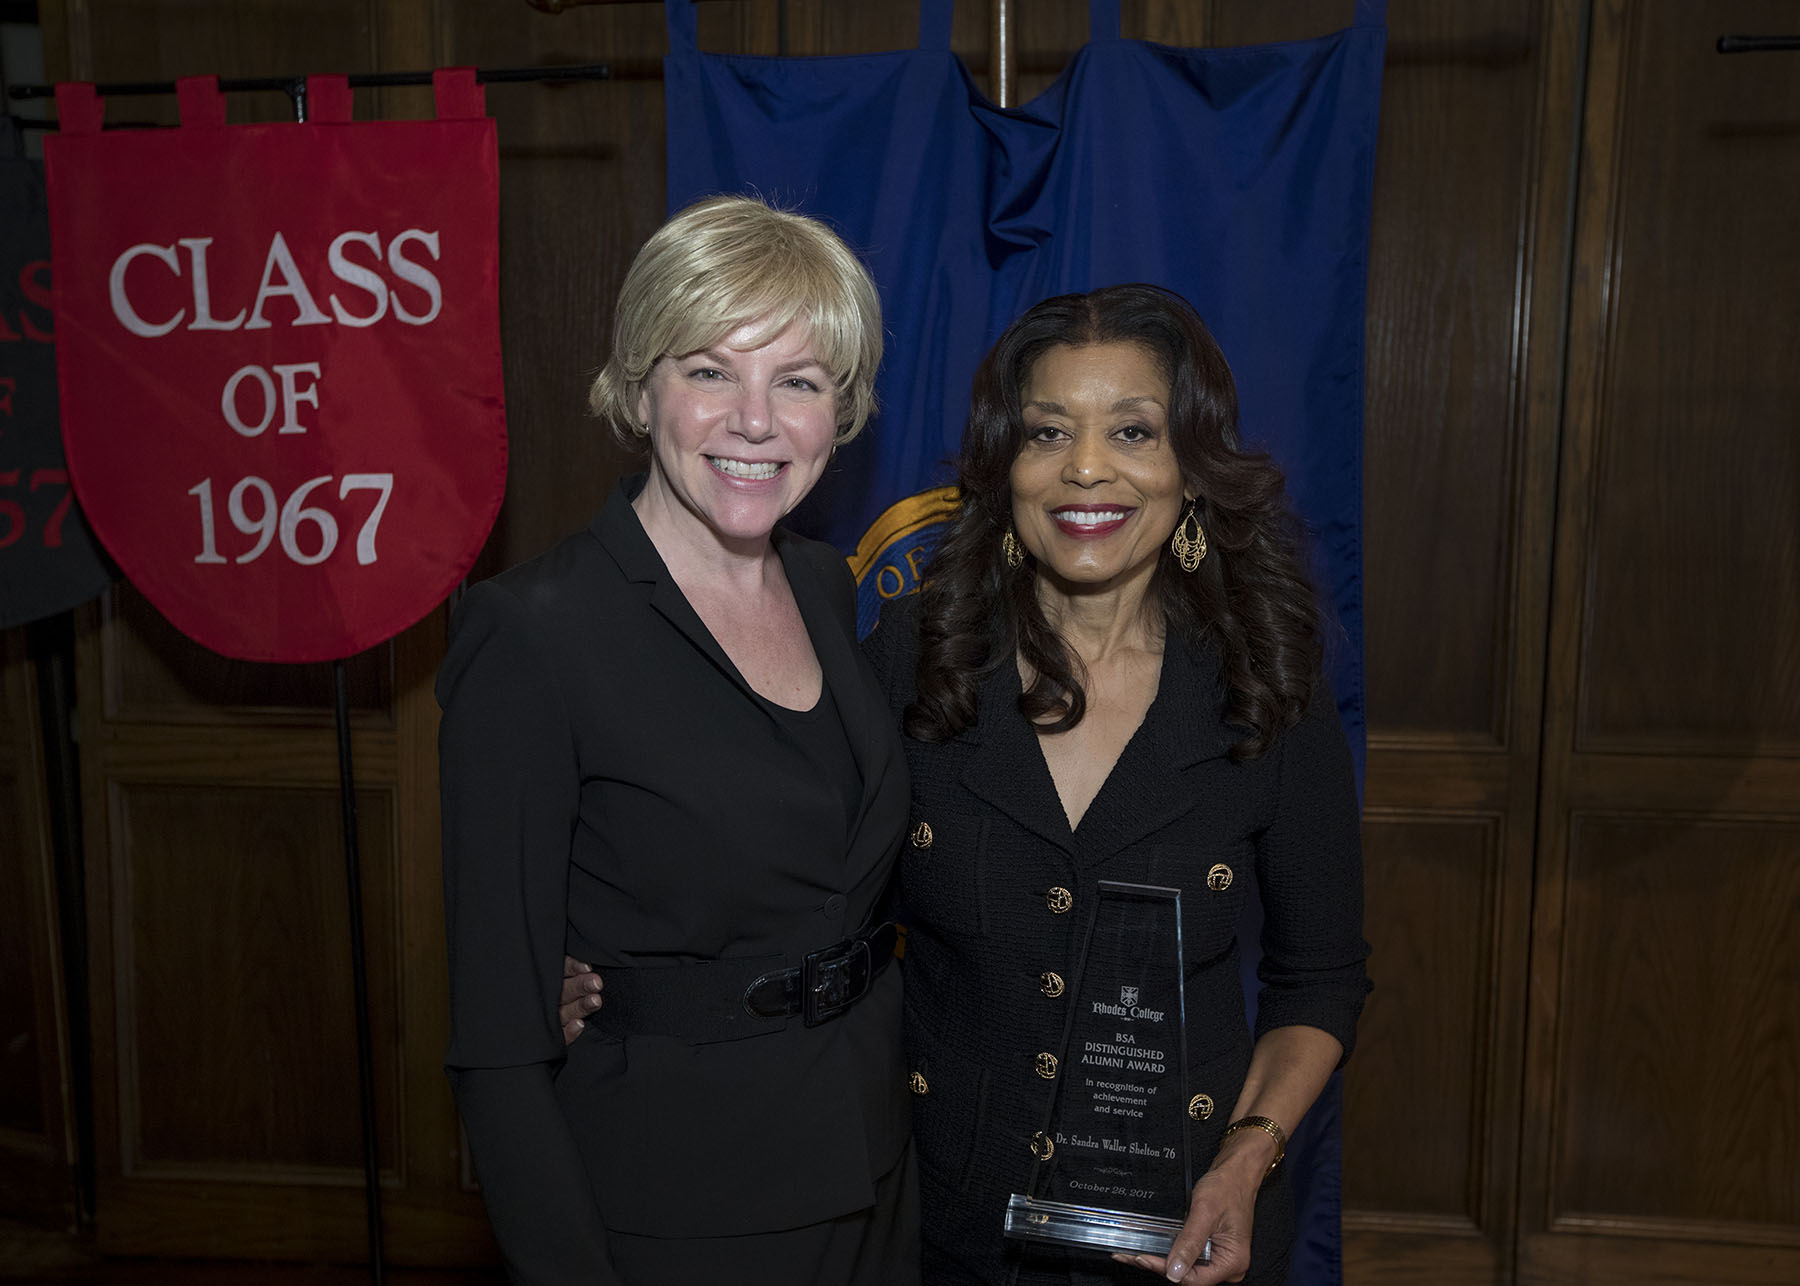 Dr. Sandra Waller Shelton '76 and President Hass